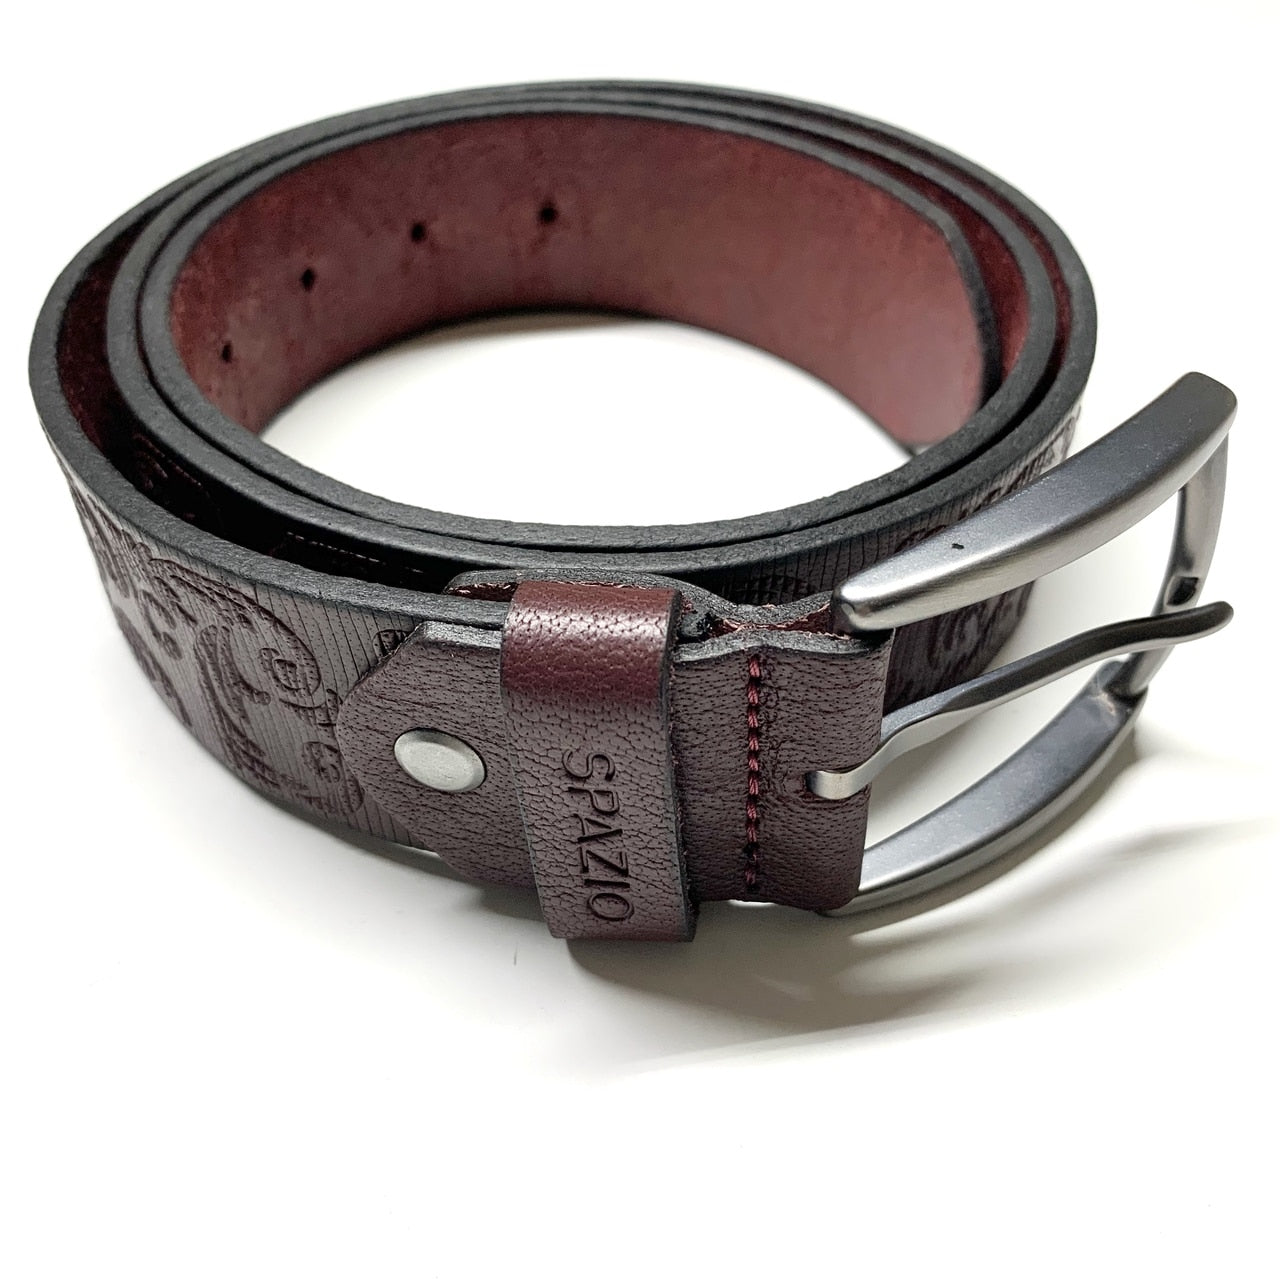 Paisley Stamped Belt - Burgundy